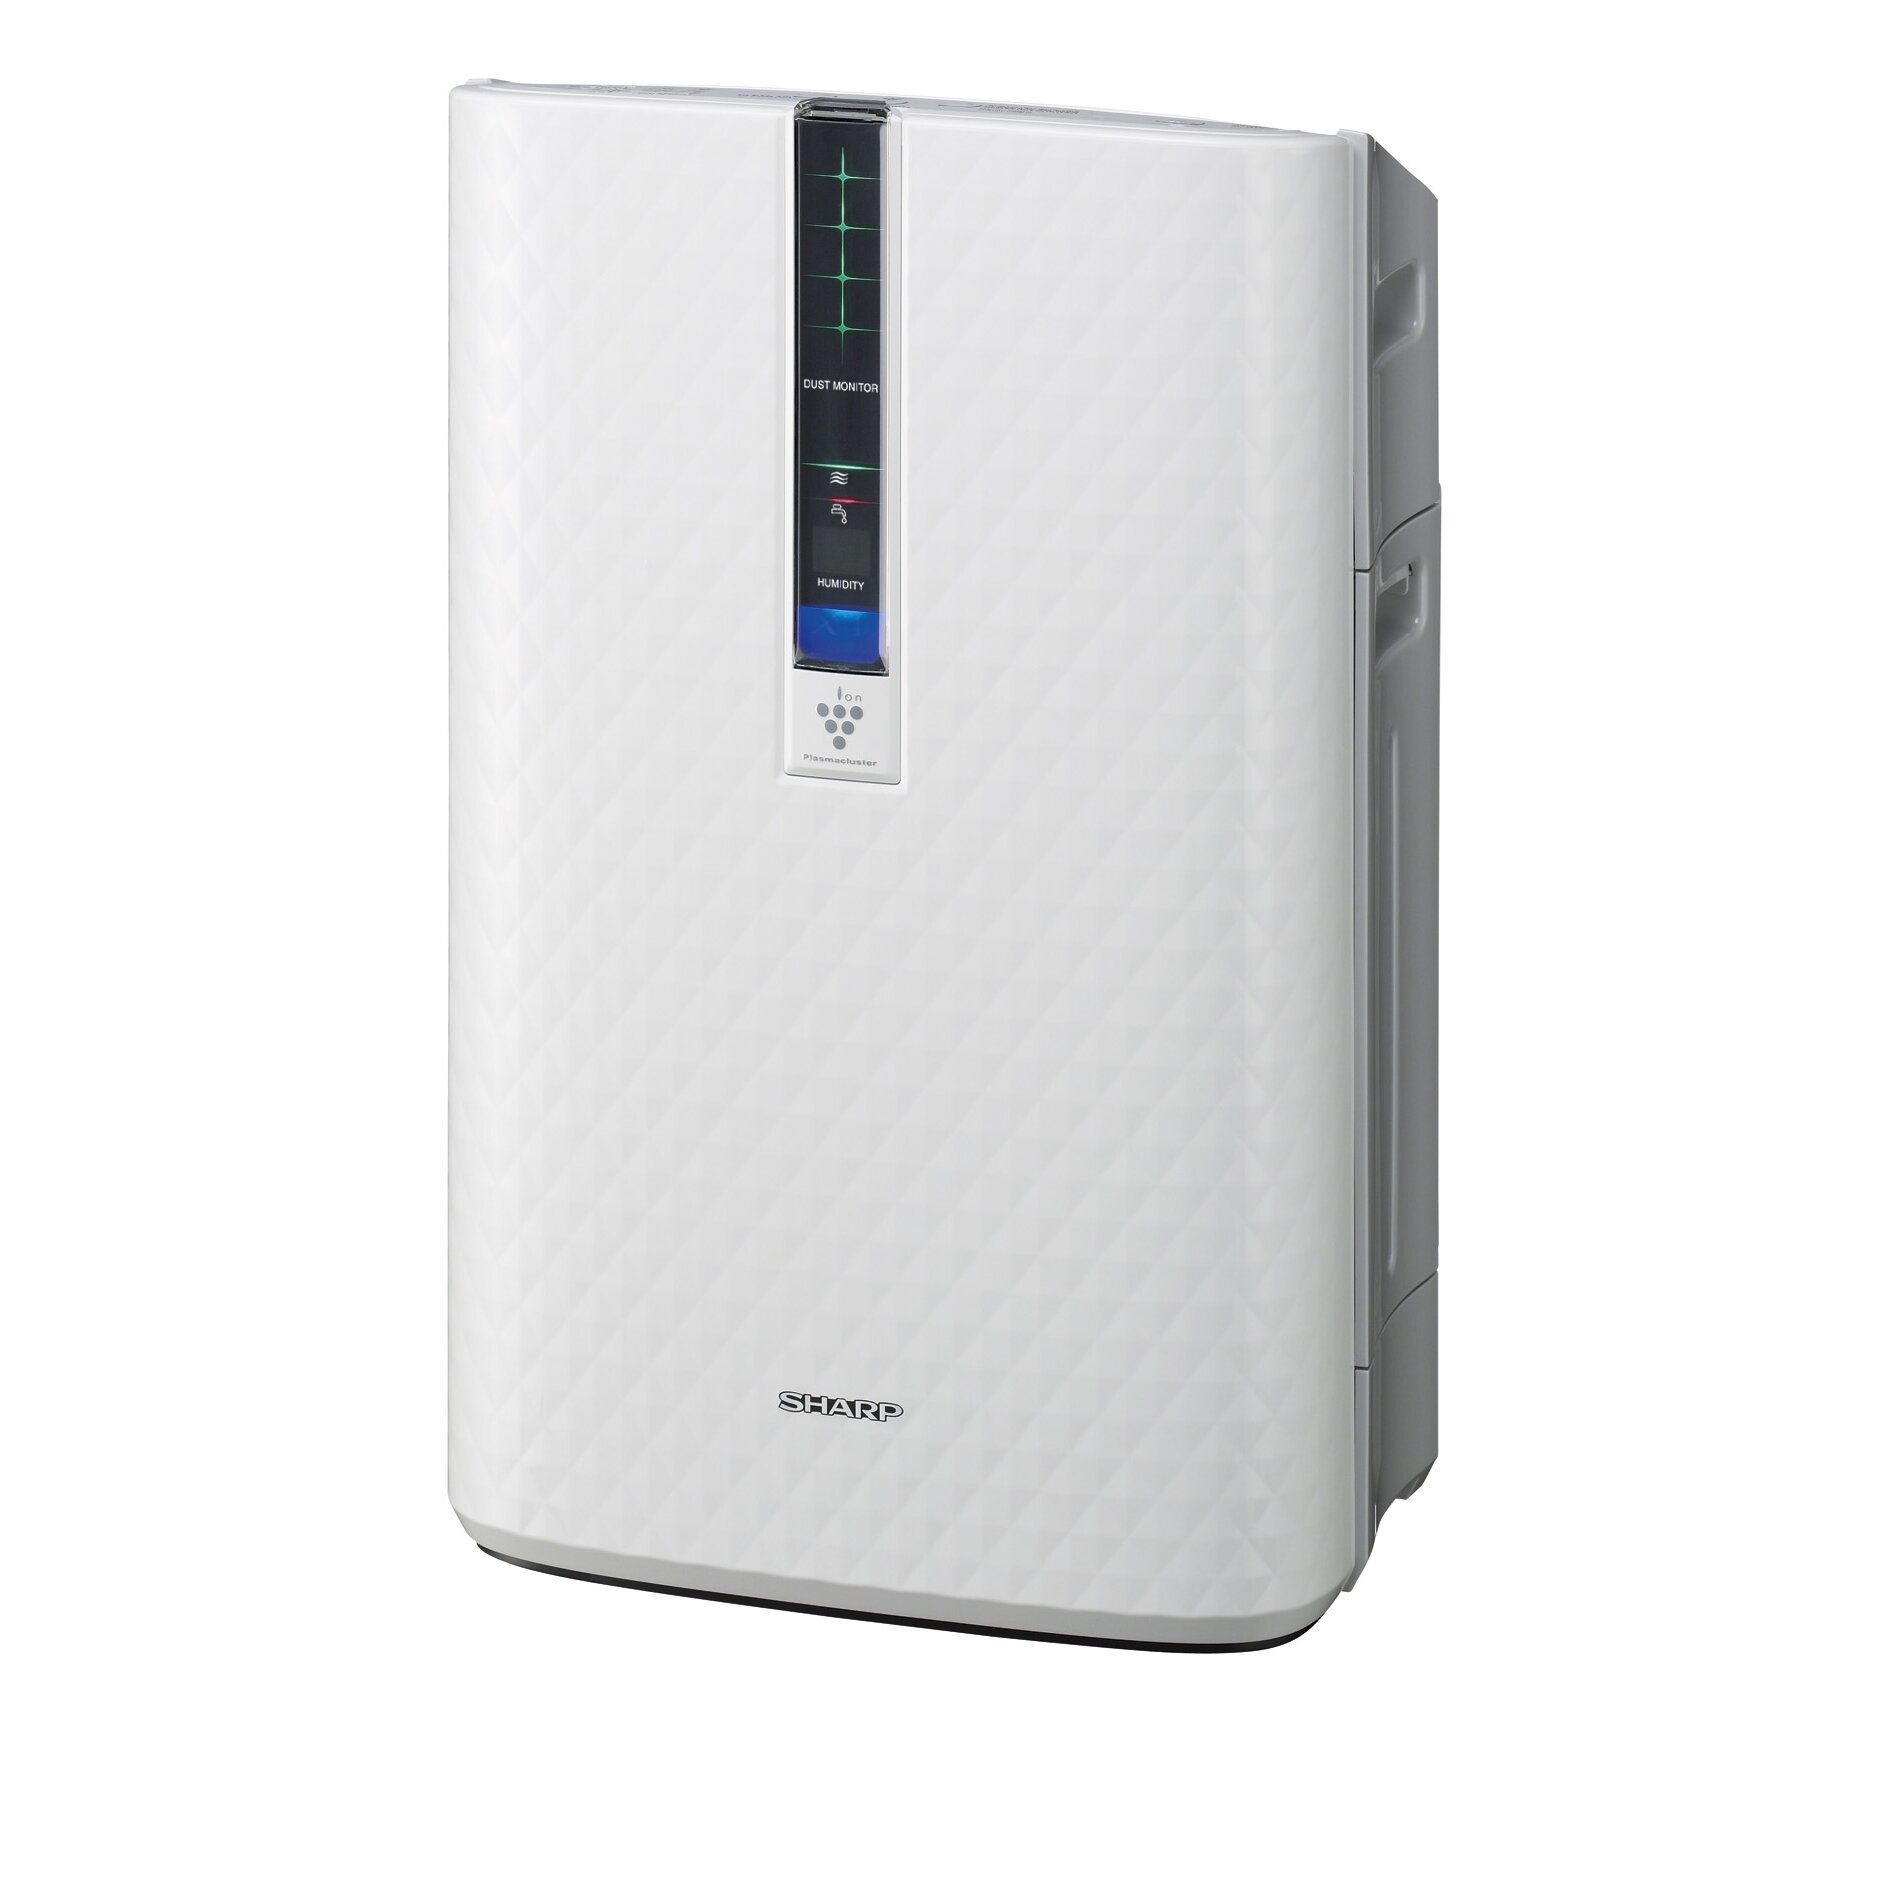 Sharp sharp air room true hepa air purifier reviews for Bedroom air purifier